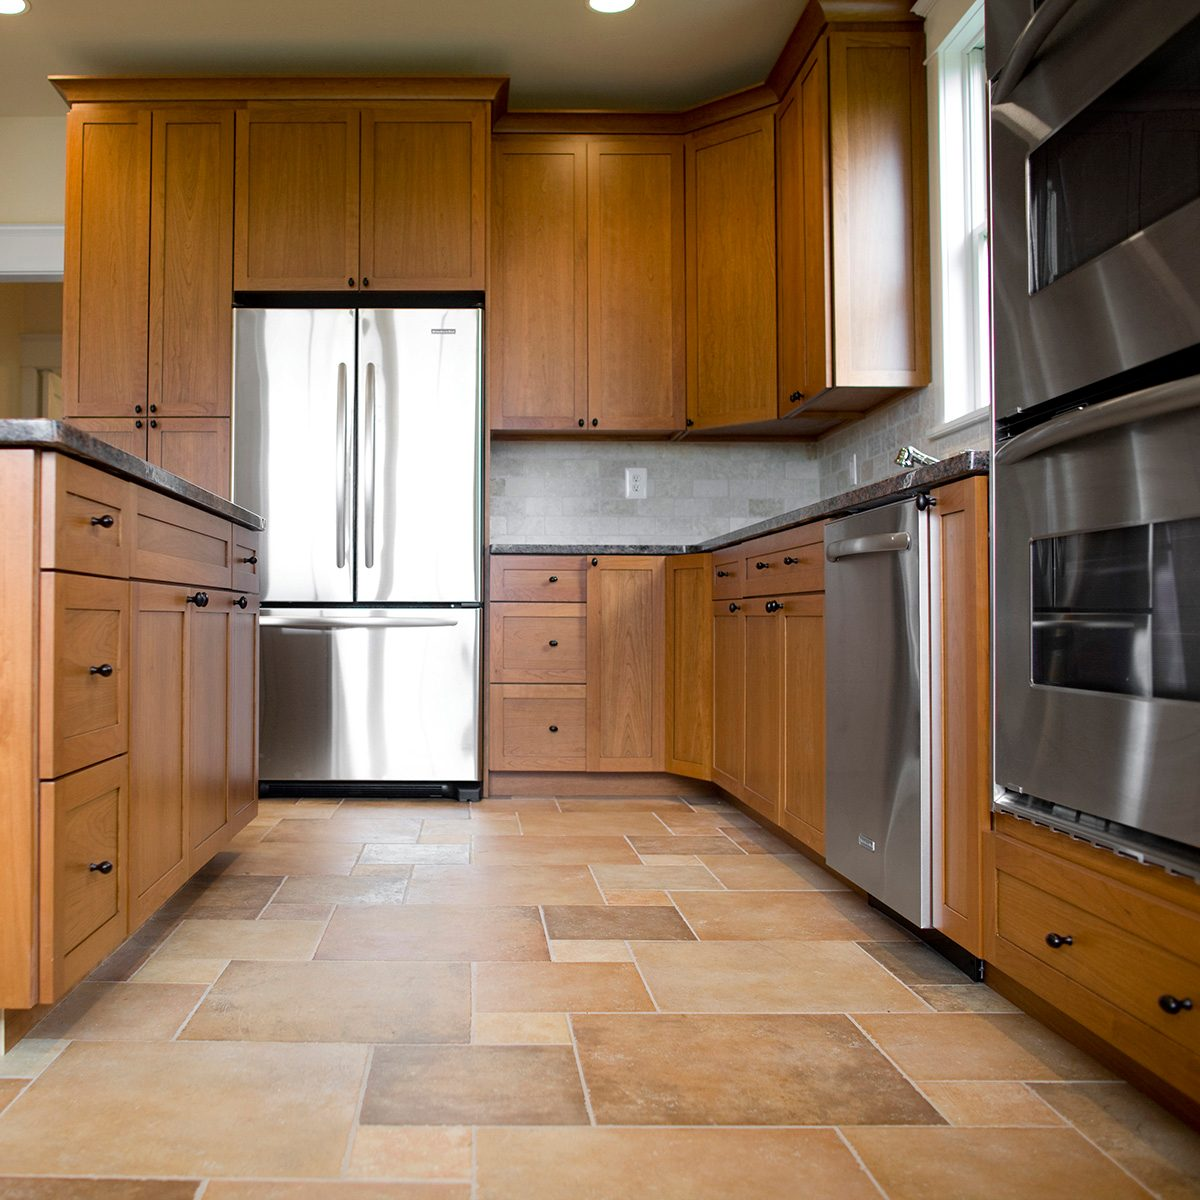 Kitchen in newly constructed house